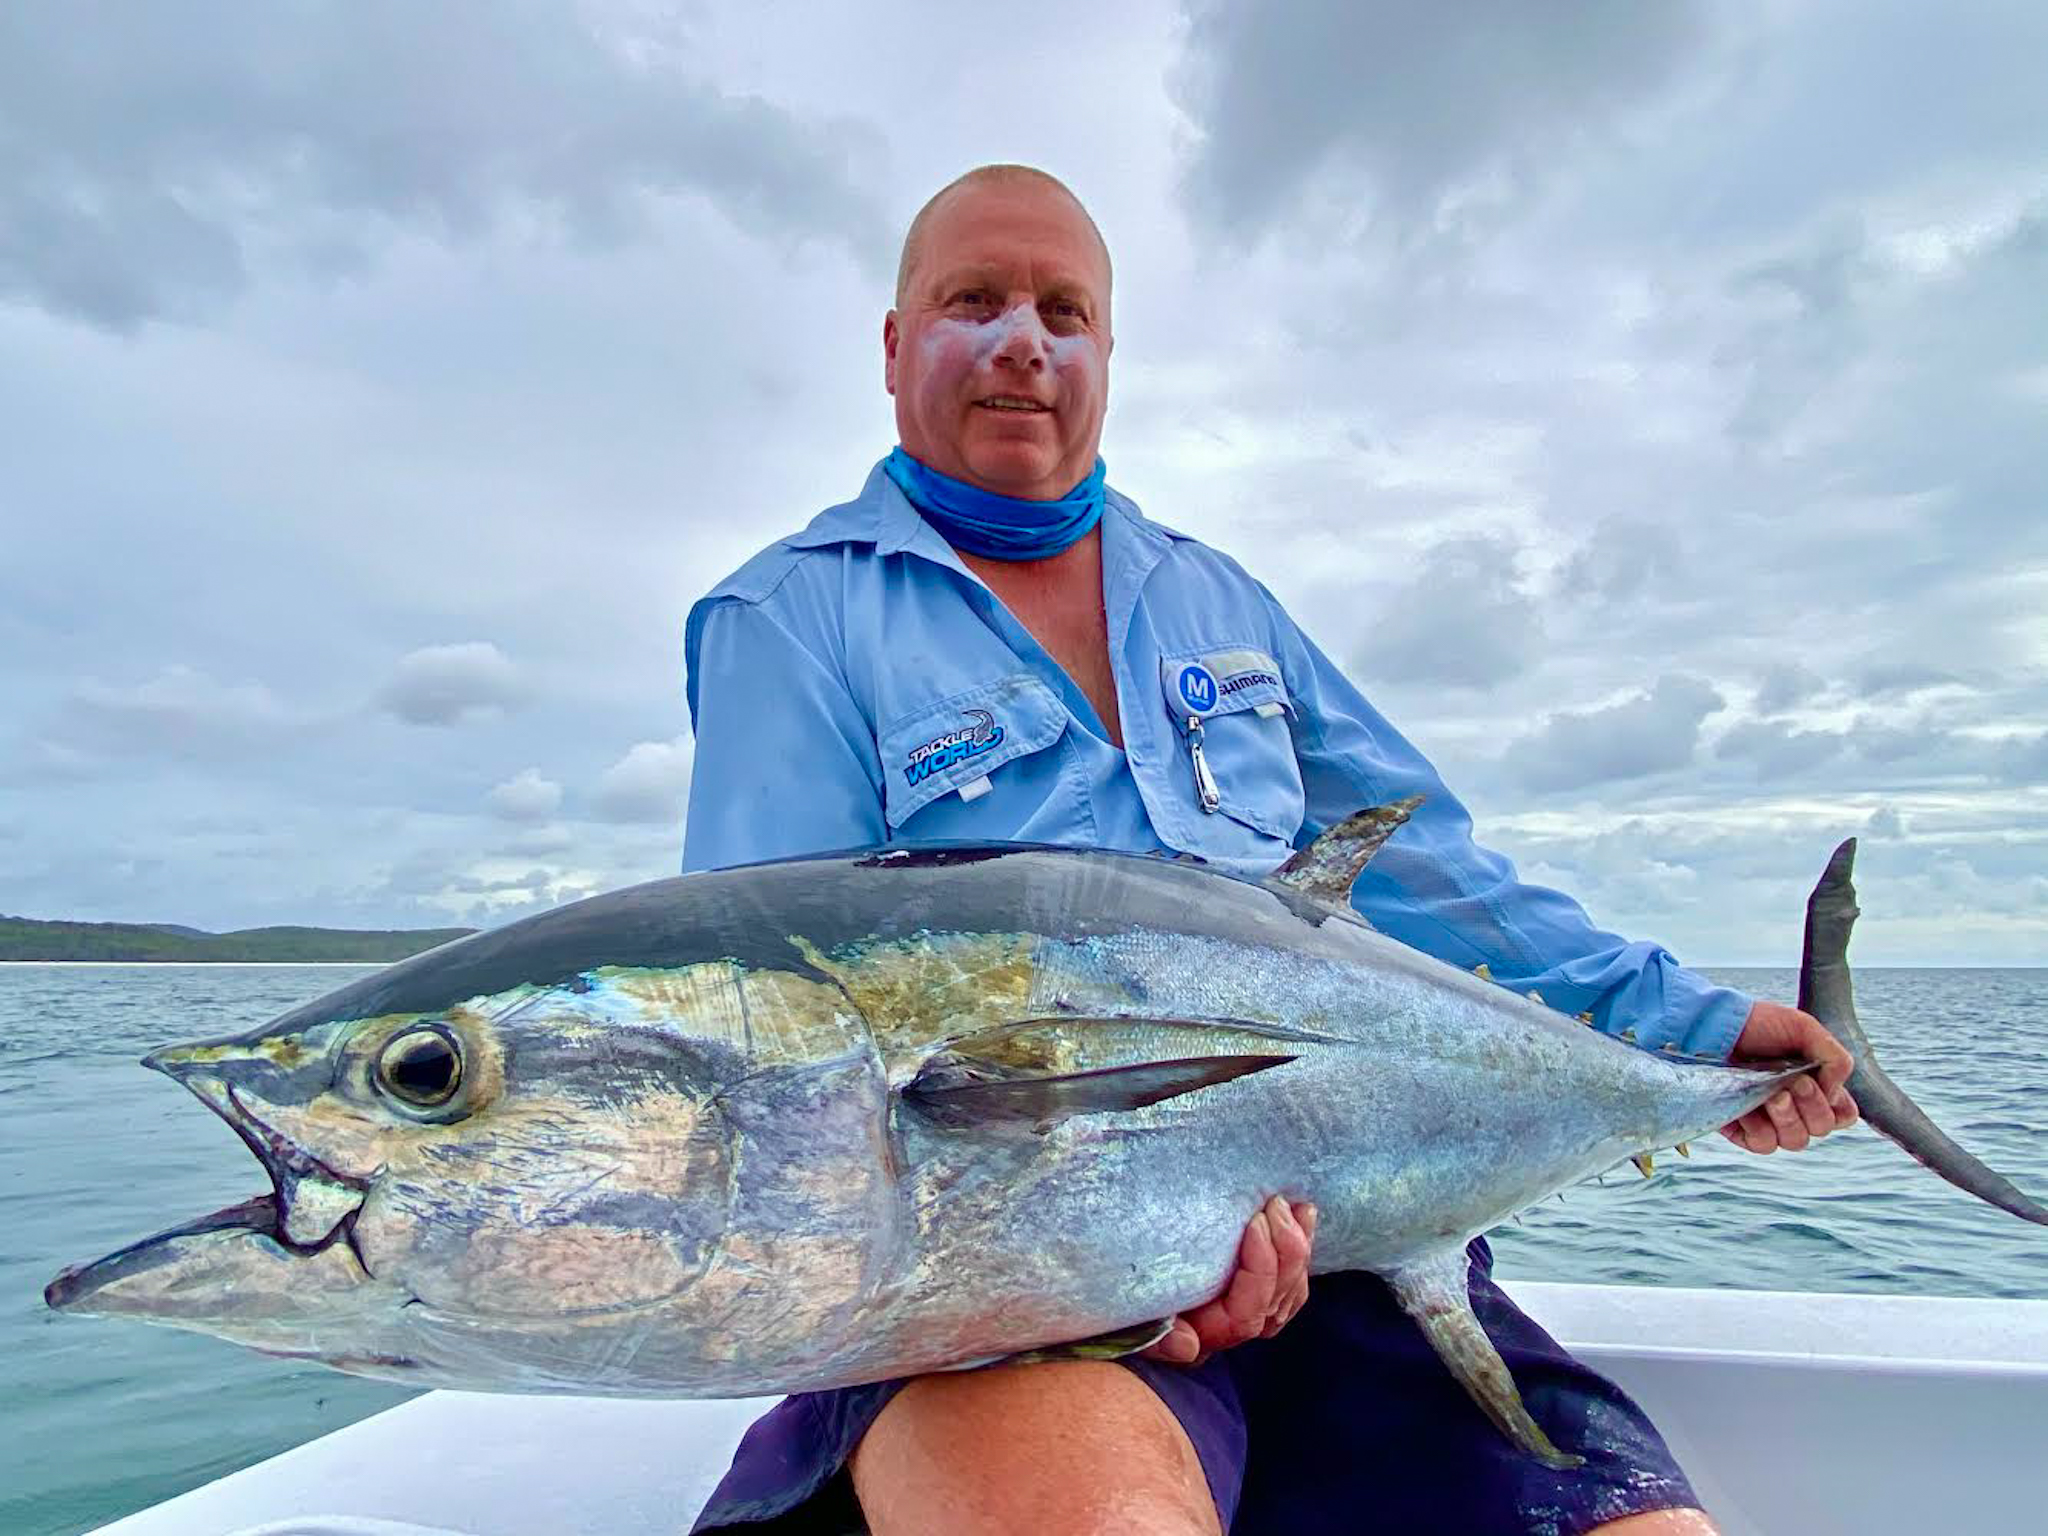 man holding a large red fish on a fishing charter in hervey bay, queensland, australia